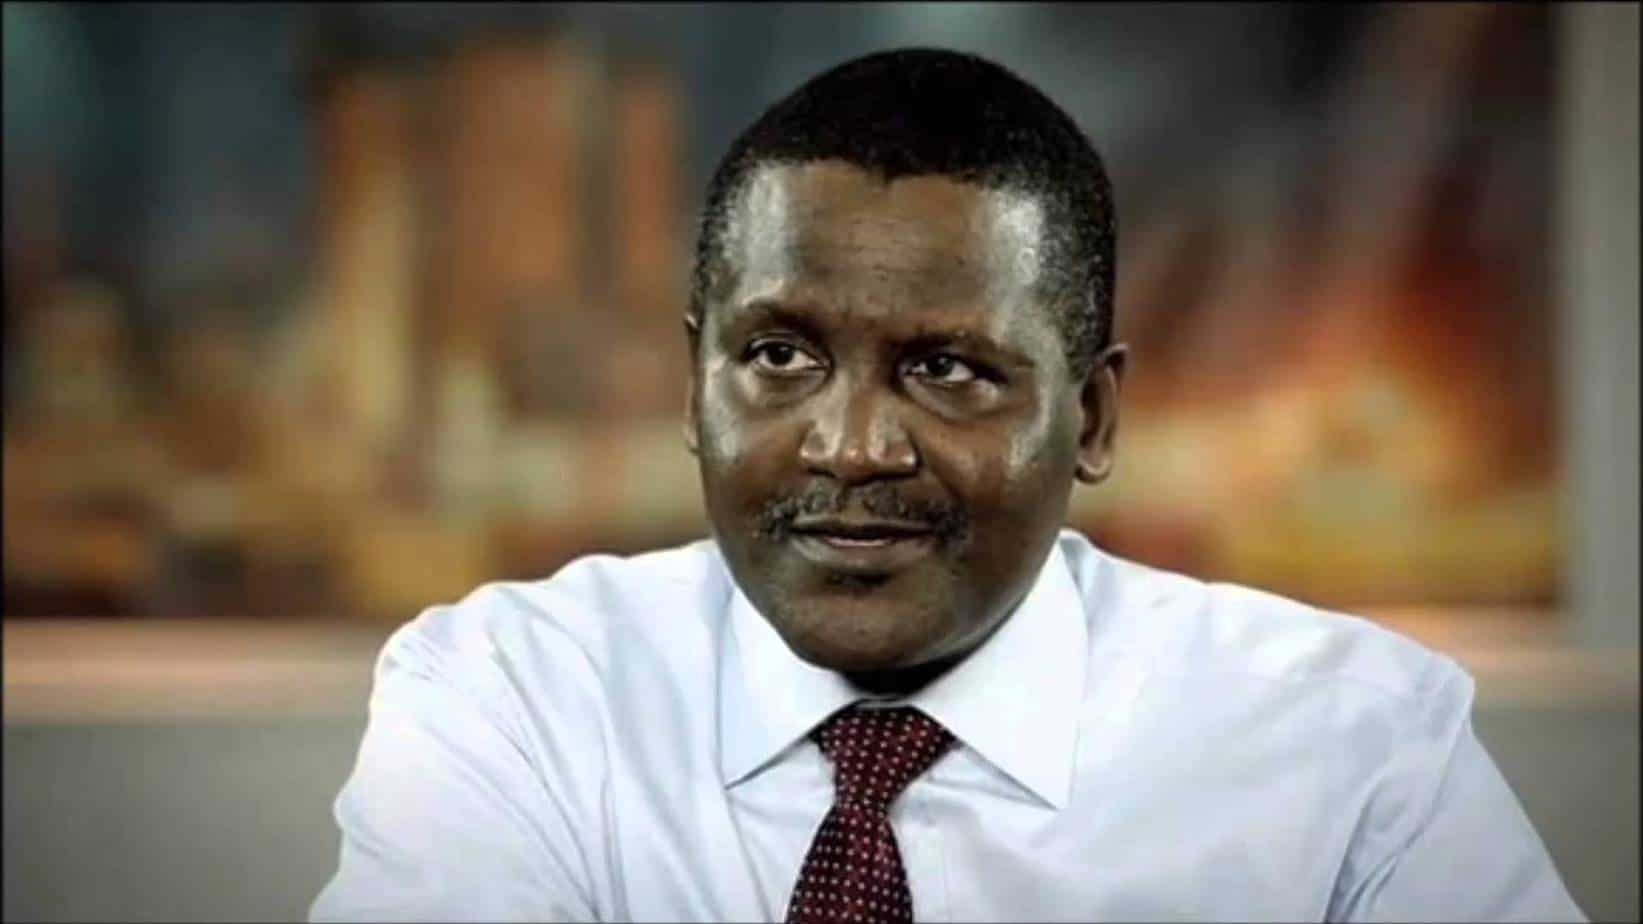 Details About Dangote's wife and children